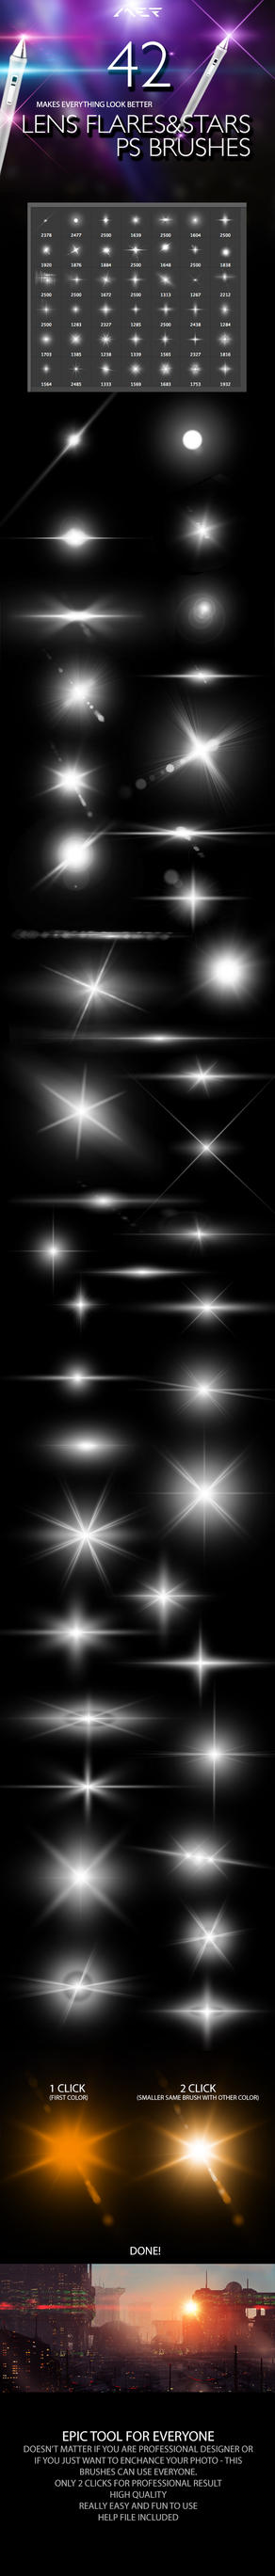 42 Lens Flares And Stars Photoshop Brushes by ArtistMEF